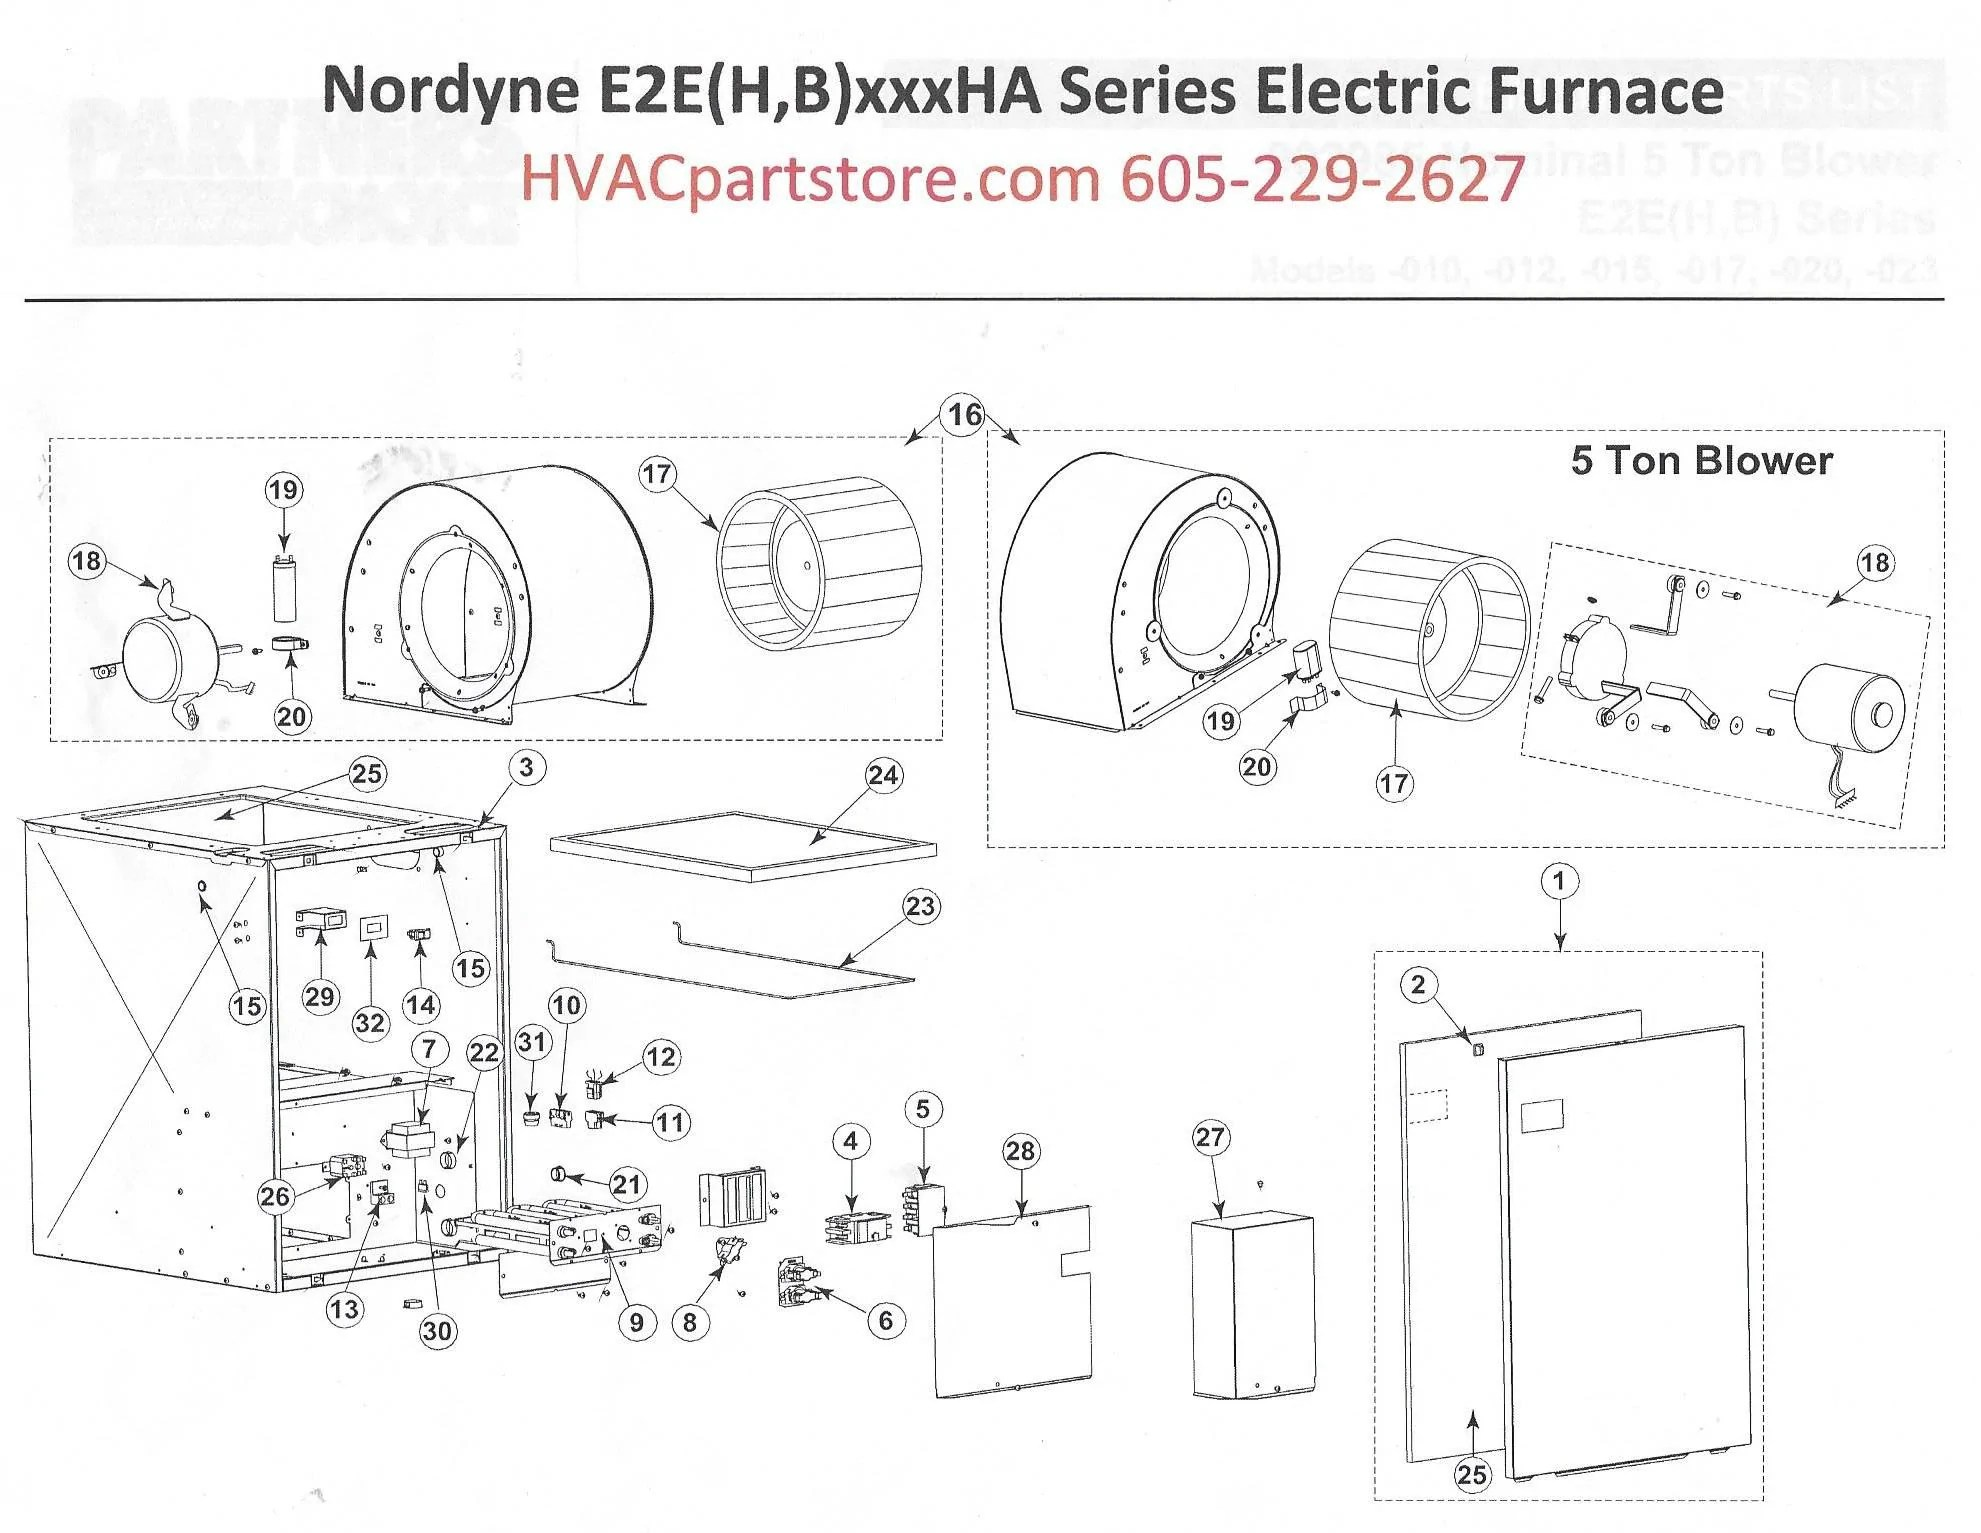 small resolution of  3f20 40b2 8e78 670eeb0ab556 9778179831979465996 eb23a furnace wiring diagram coleman gandul 45 77 79 nordyne furnace diagram nordyne ac units